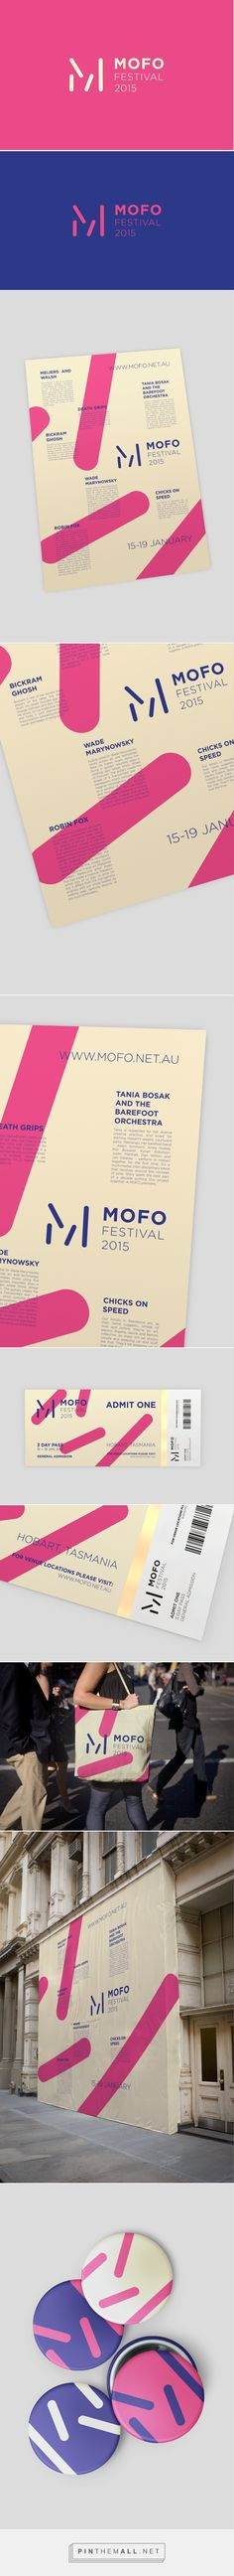 MOFO Festival by Harley Jackman